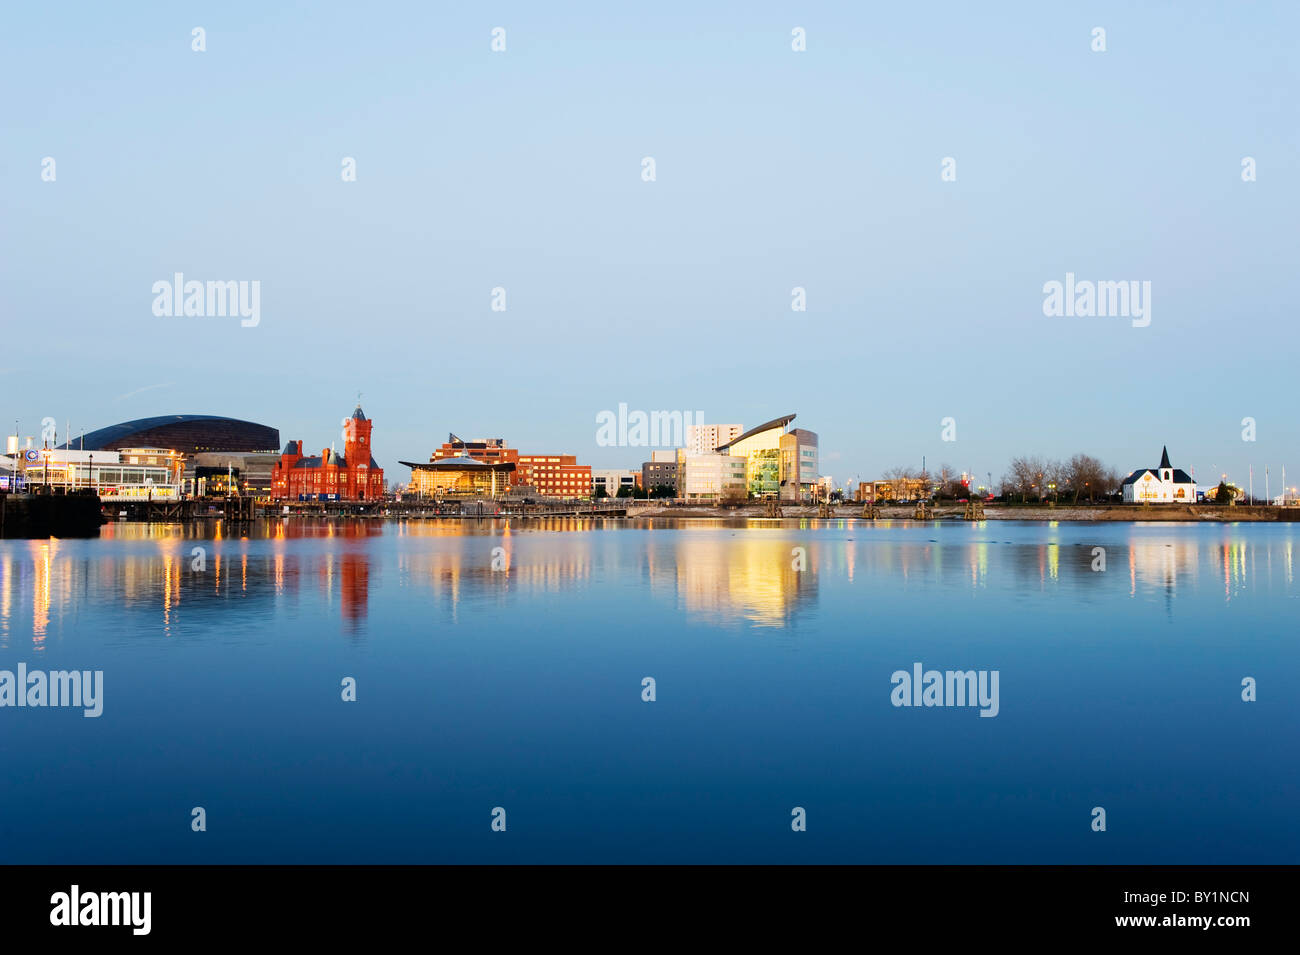 Europe, UK, United Kingdom, Wales, Cardiff, Cardiff Bay, Millennium Centre, Pier Head, Welsh Assembly Building, - Stock Image